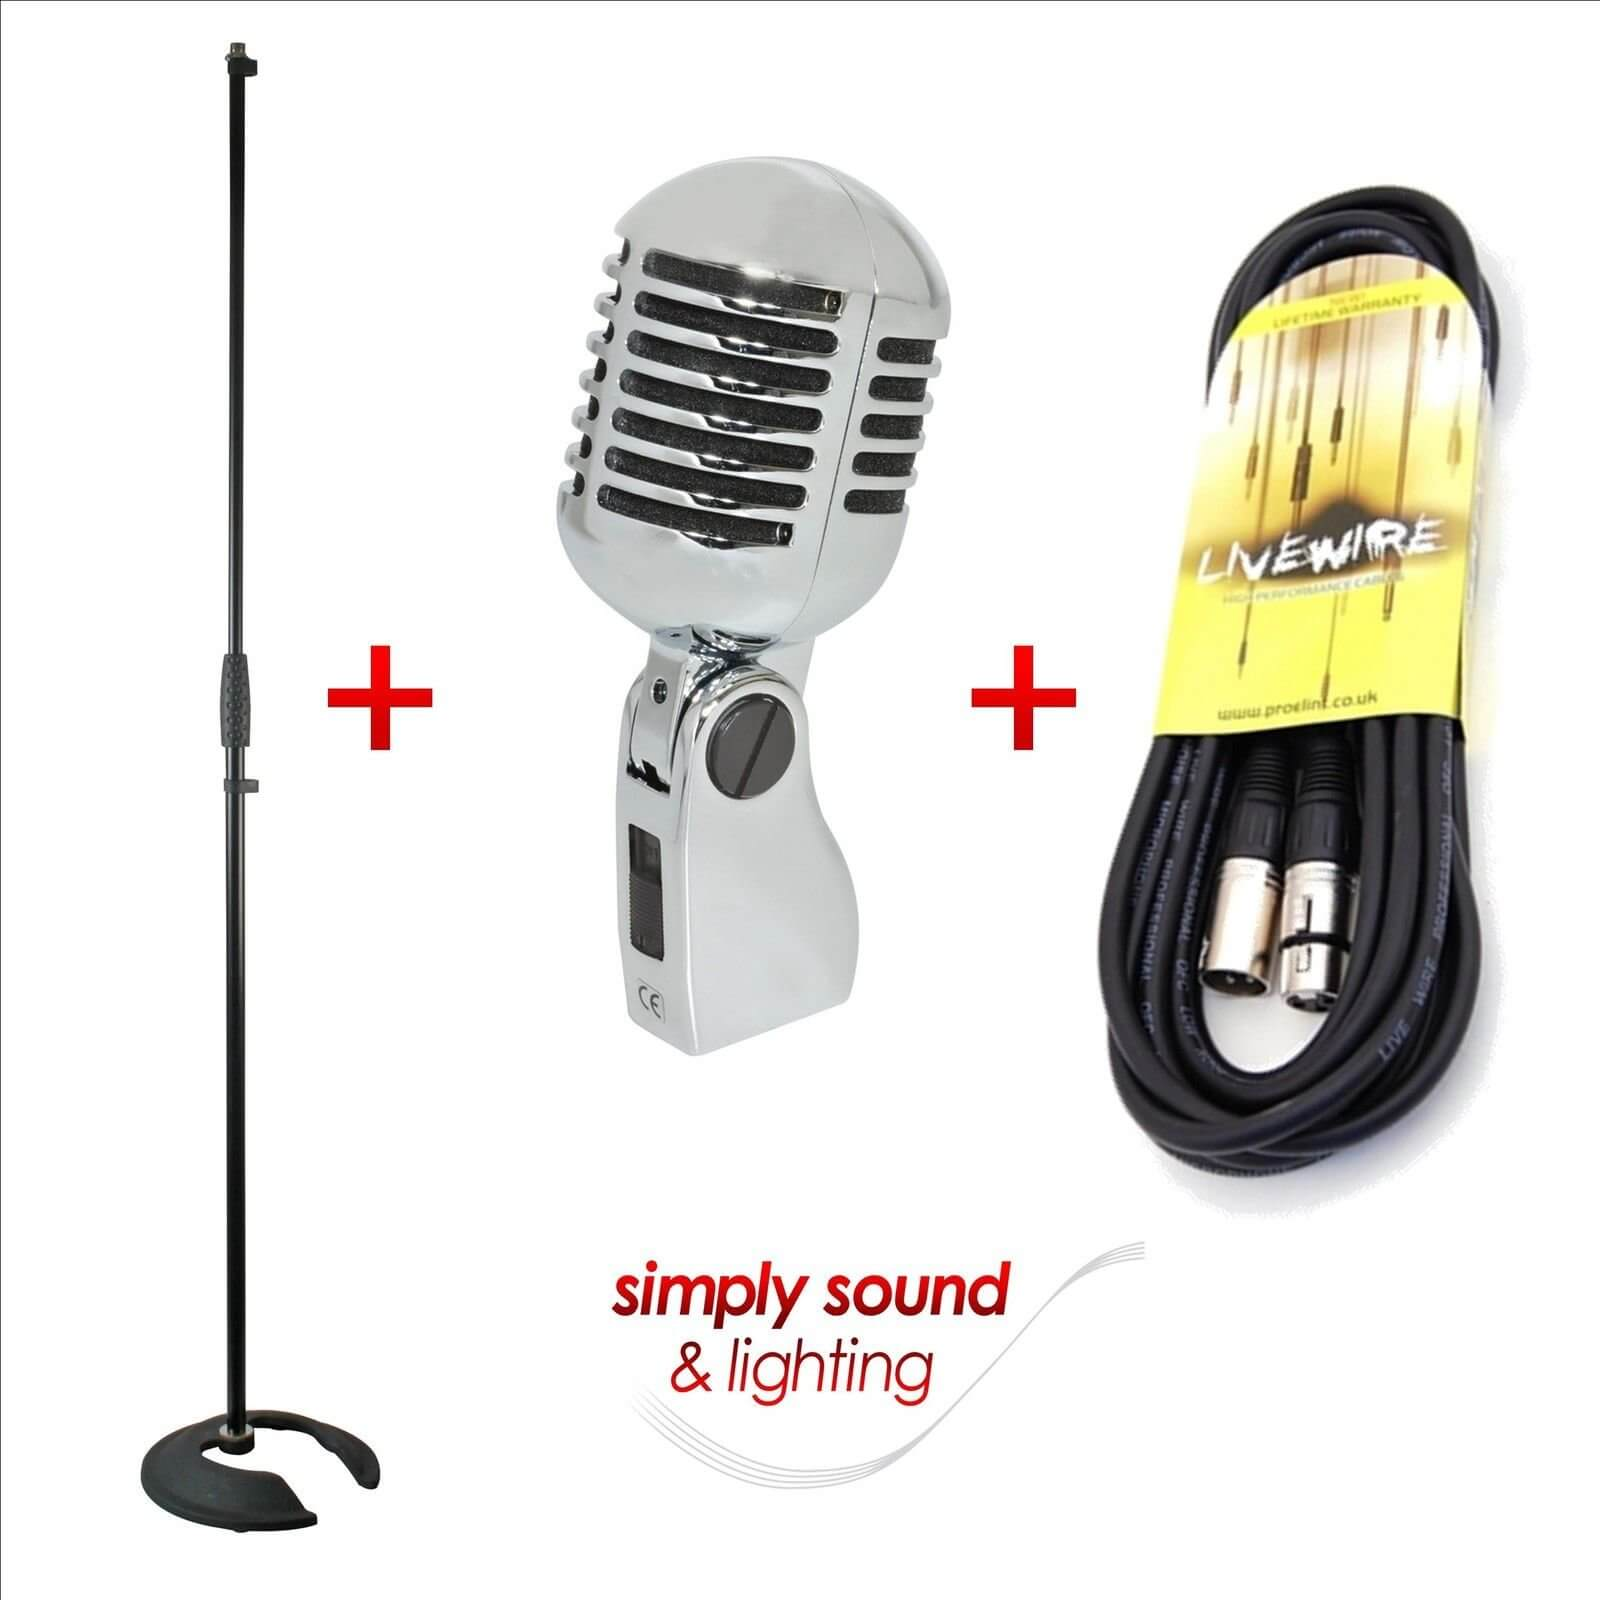 NEW Retro Vintage Silver Style Microphone + Mic Stand & 6m Cable